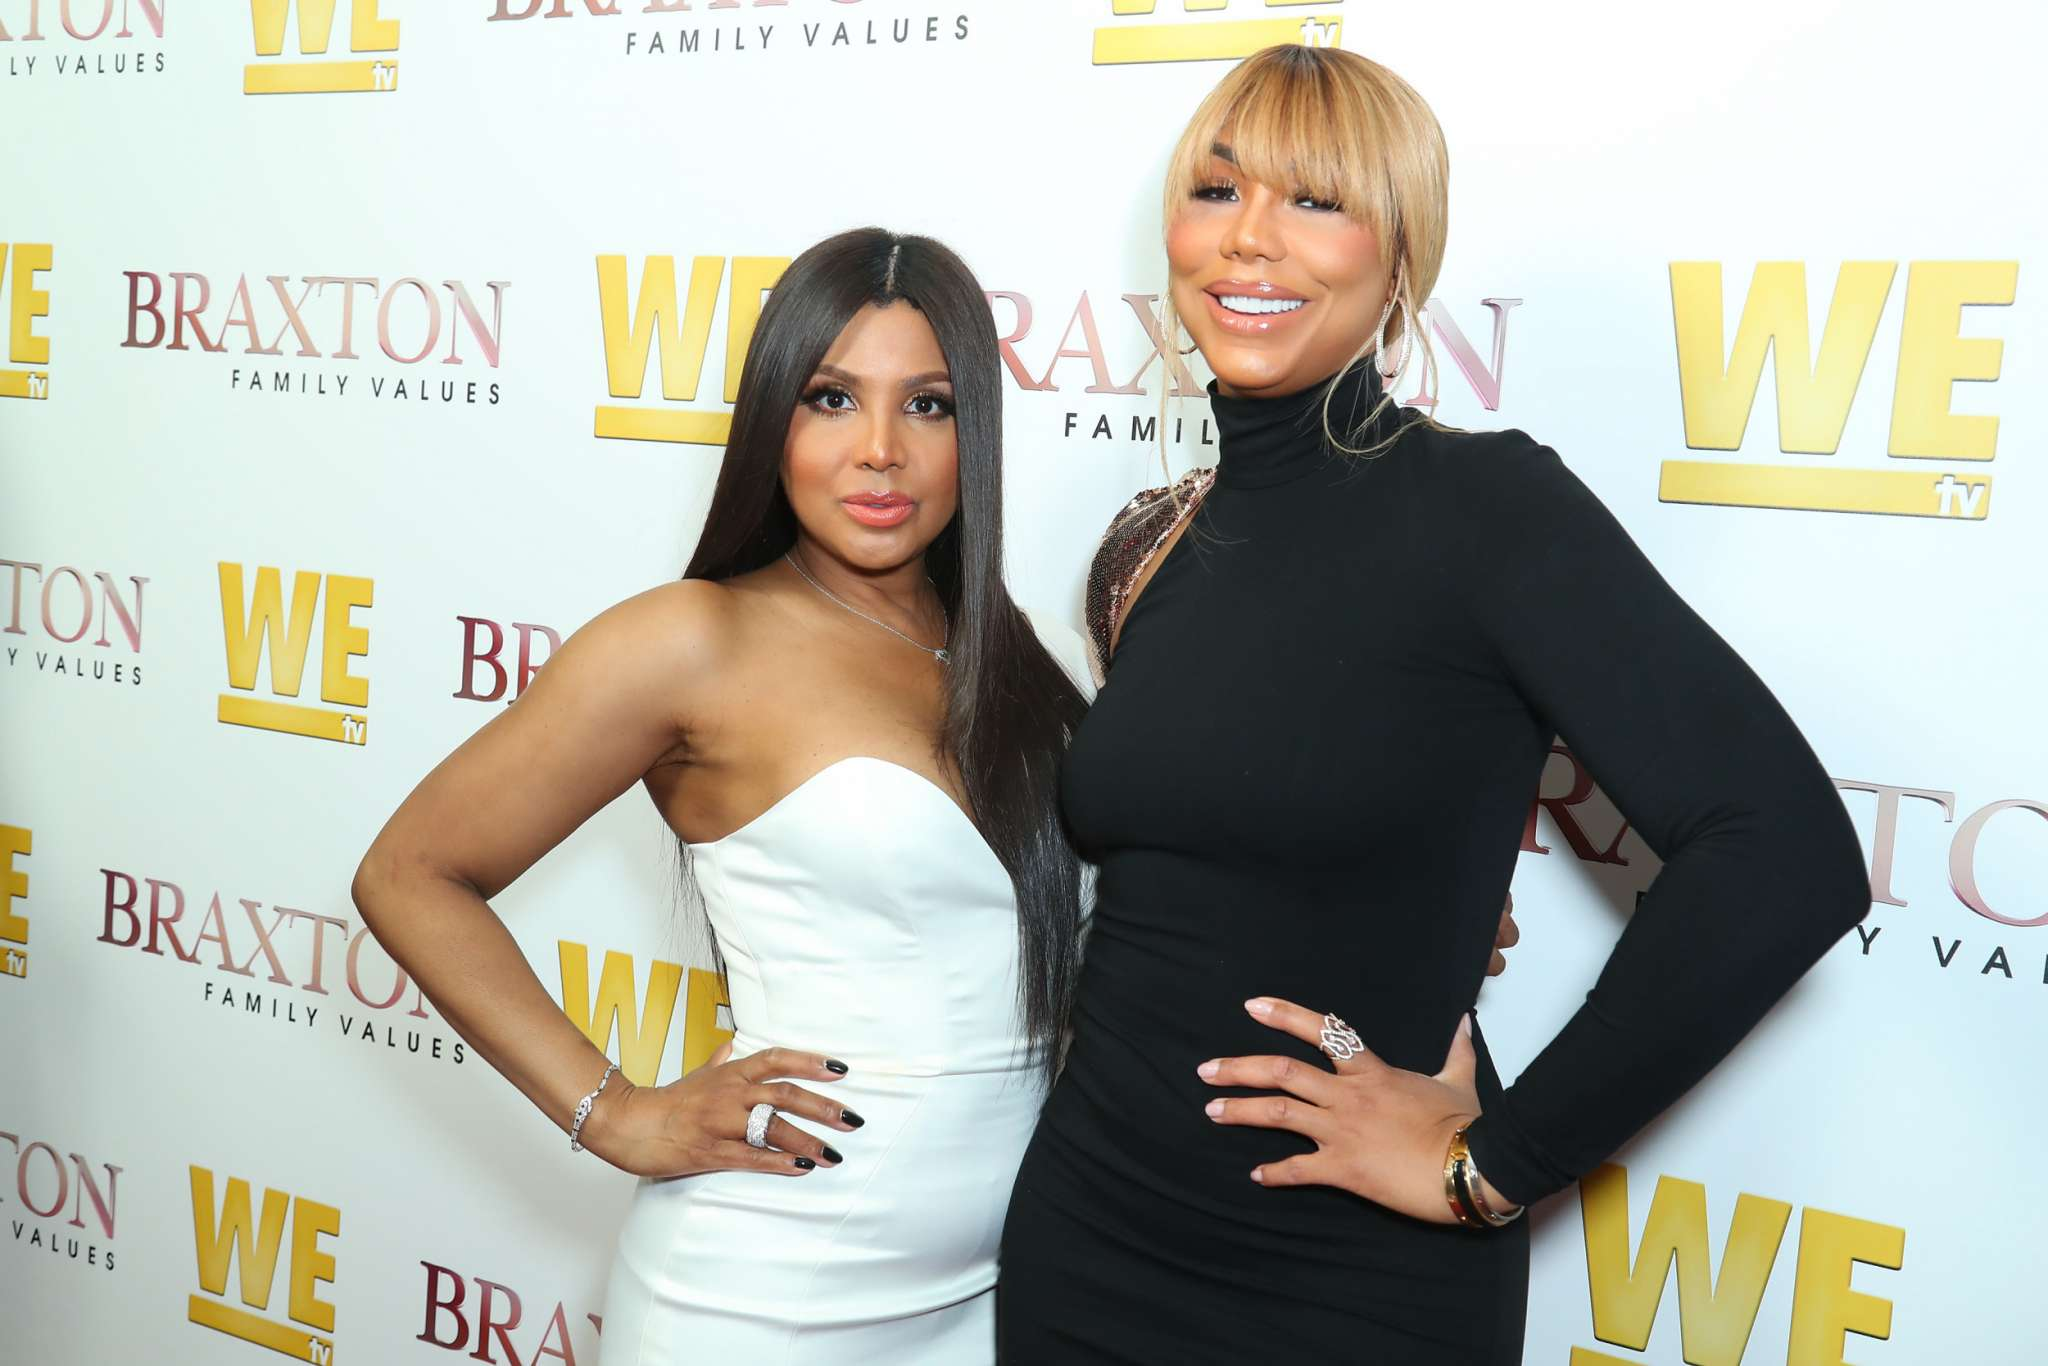 tamar-braxtons-latest-photos-with-her-sister-toni-braxton-have-fans-praising-them